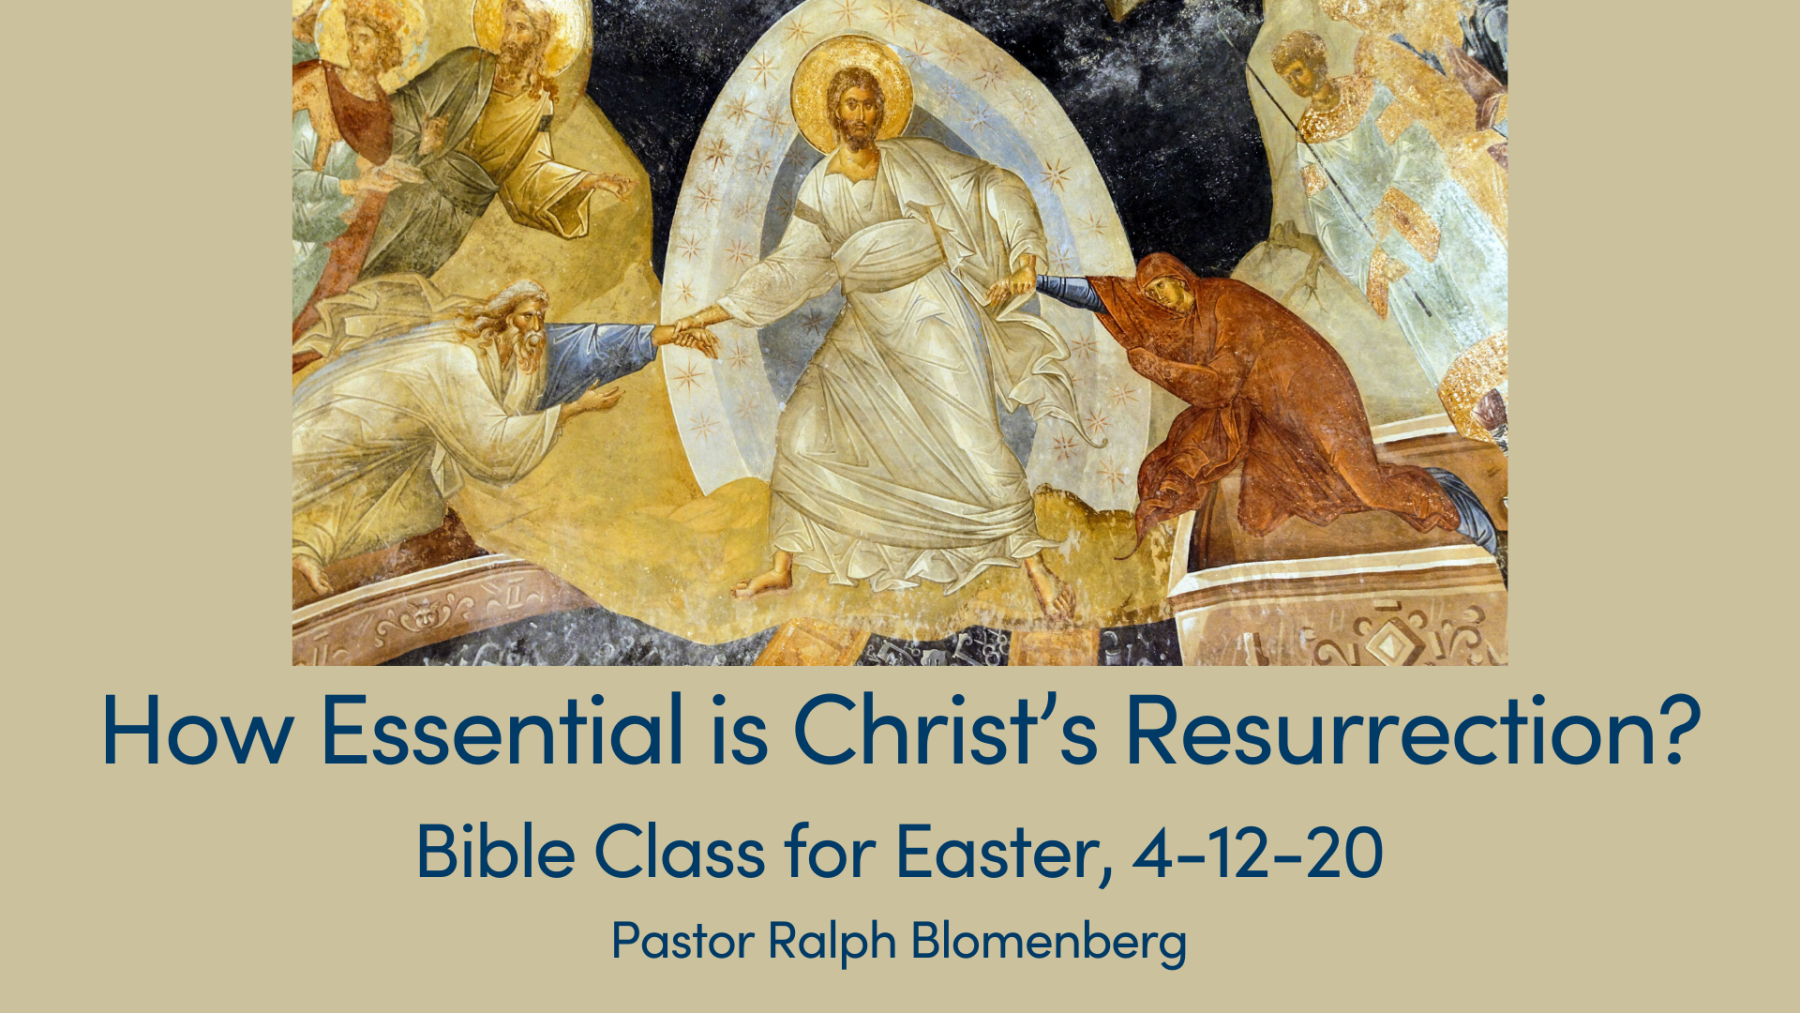 Easter Bible Class: How Essential is Christ's Resurrection?